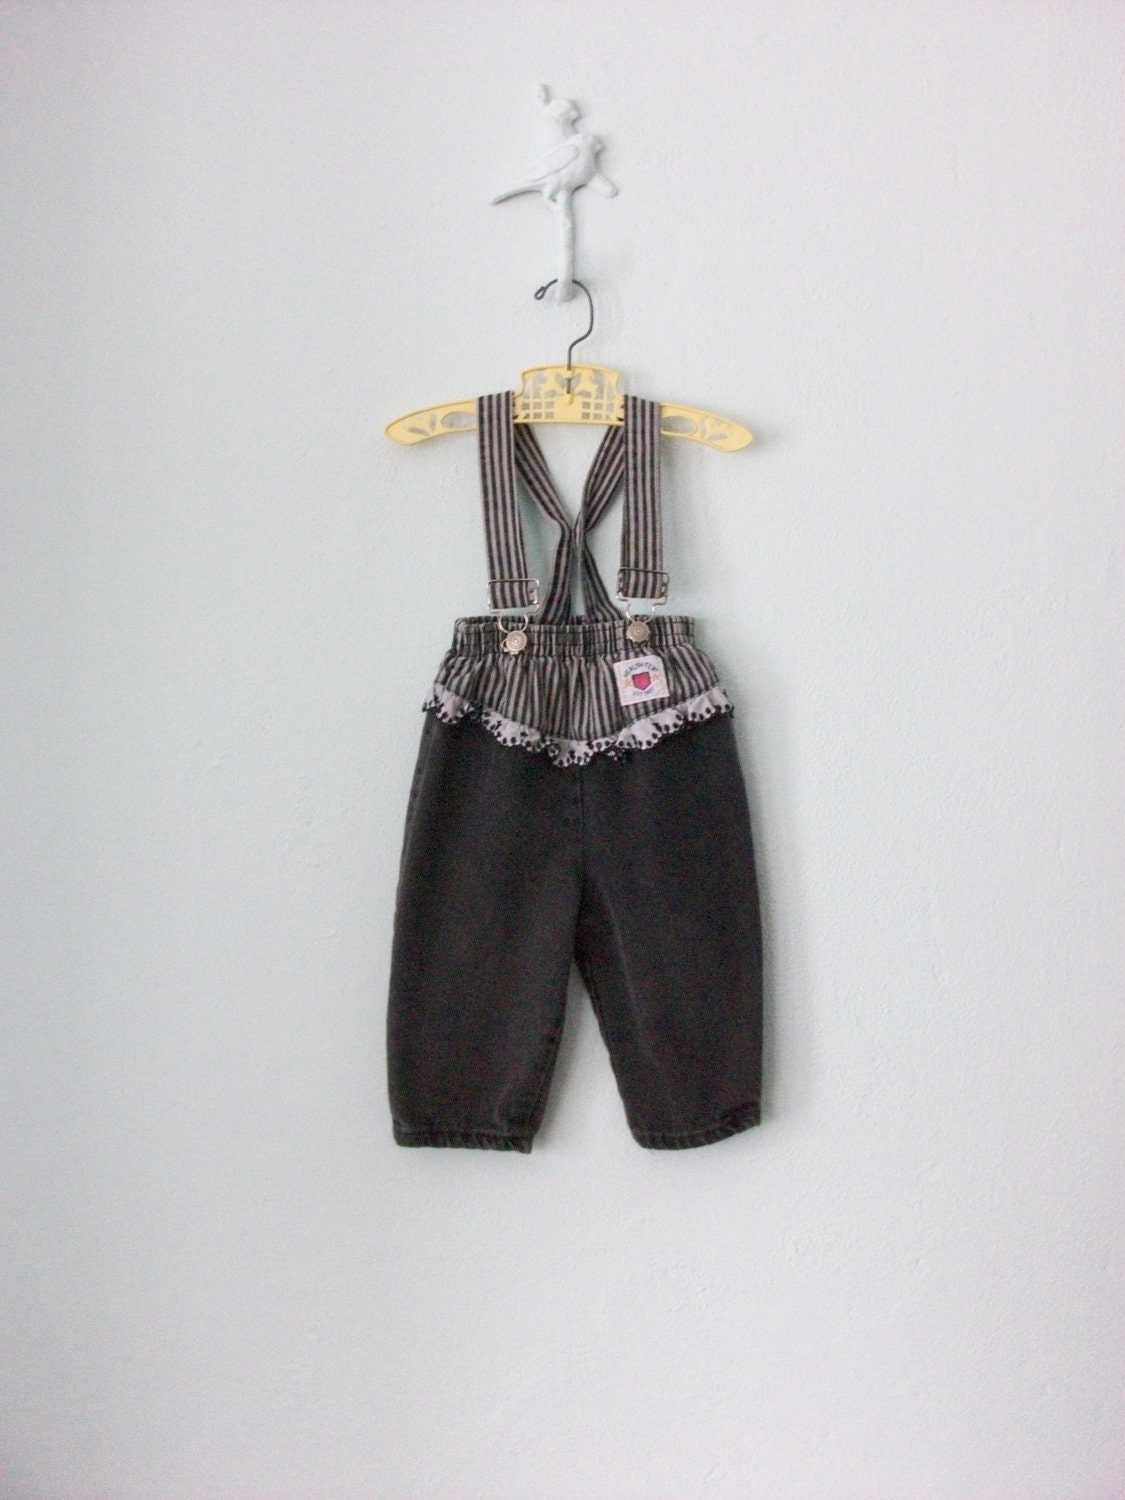 Ruffle Jean Overalls ... Toddler Girls Suspender Pants ... 24 months - sparvintheieletree